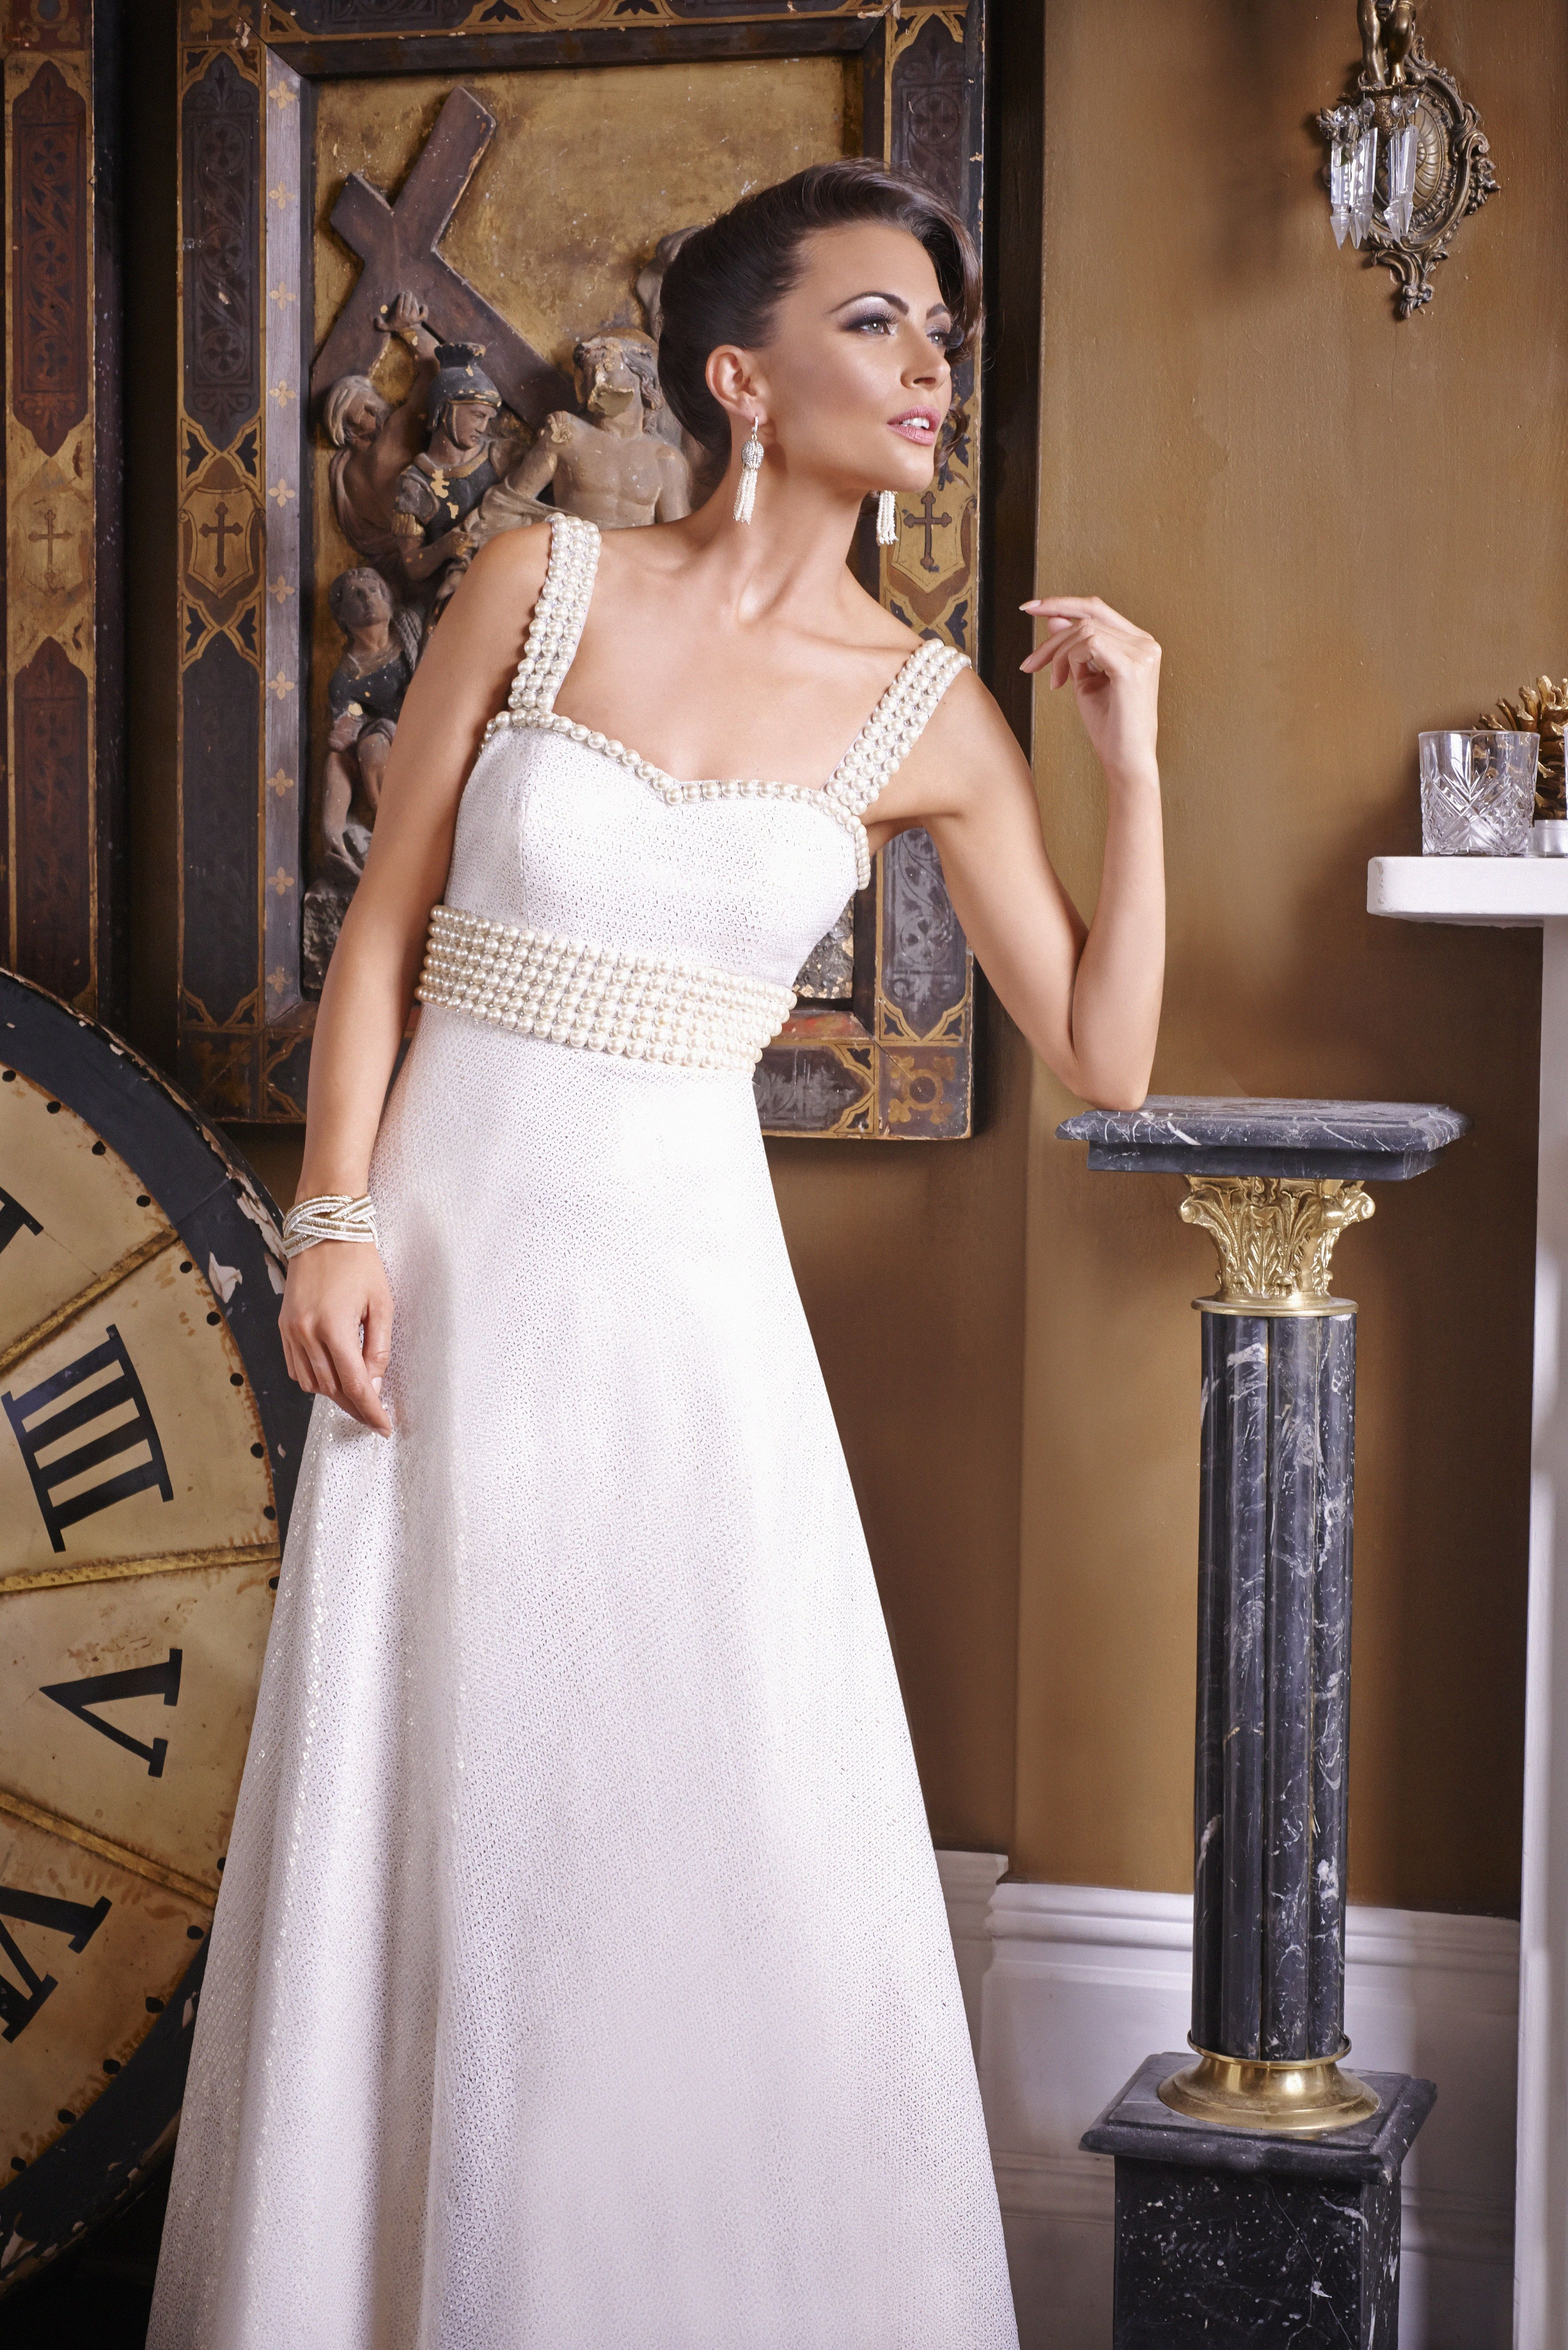 Ws10 White Registry Wedding Gown With Pearl Embroidery Low Back Studded Pearls